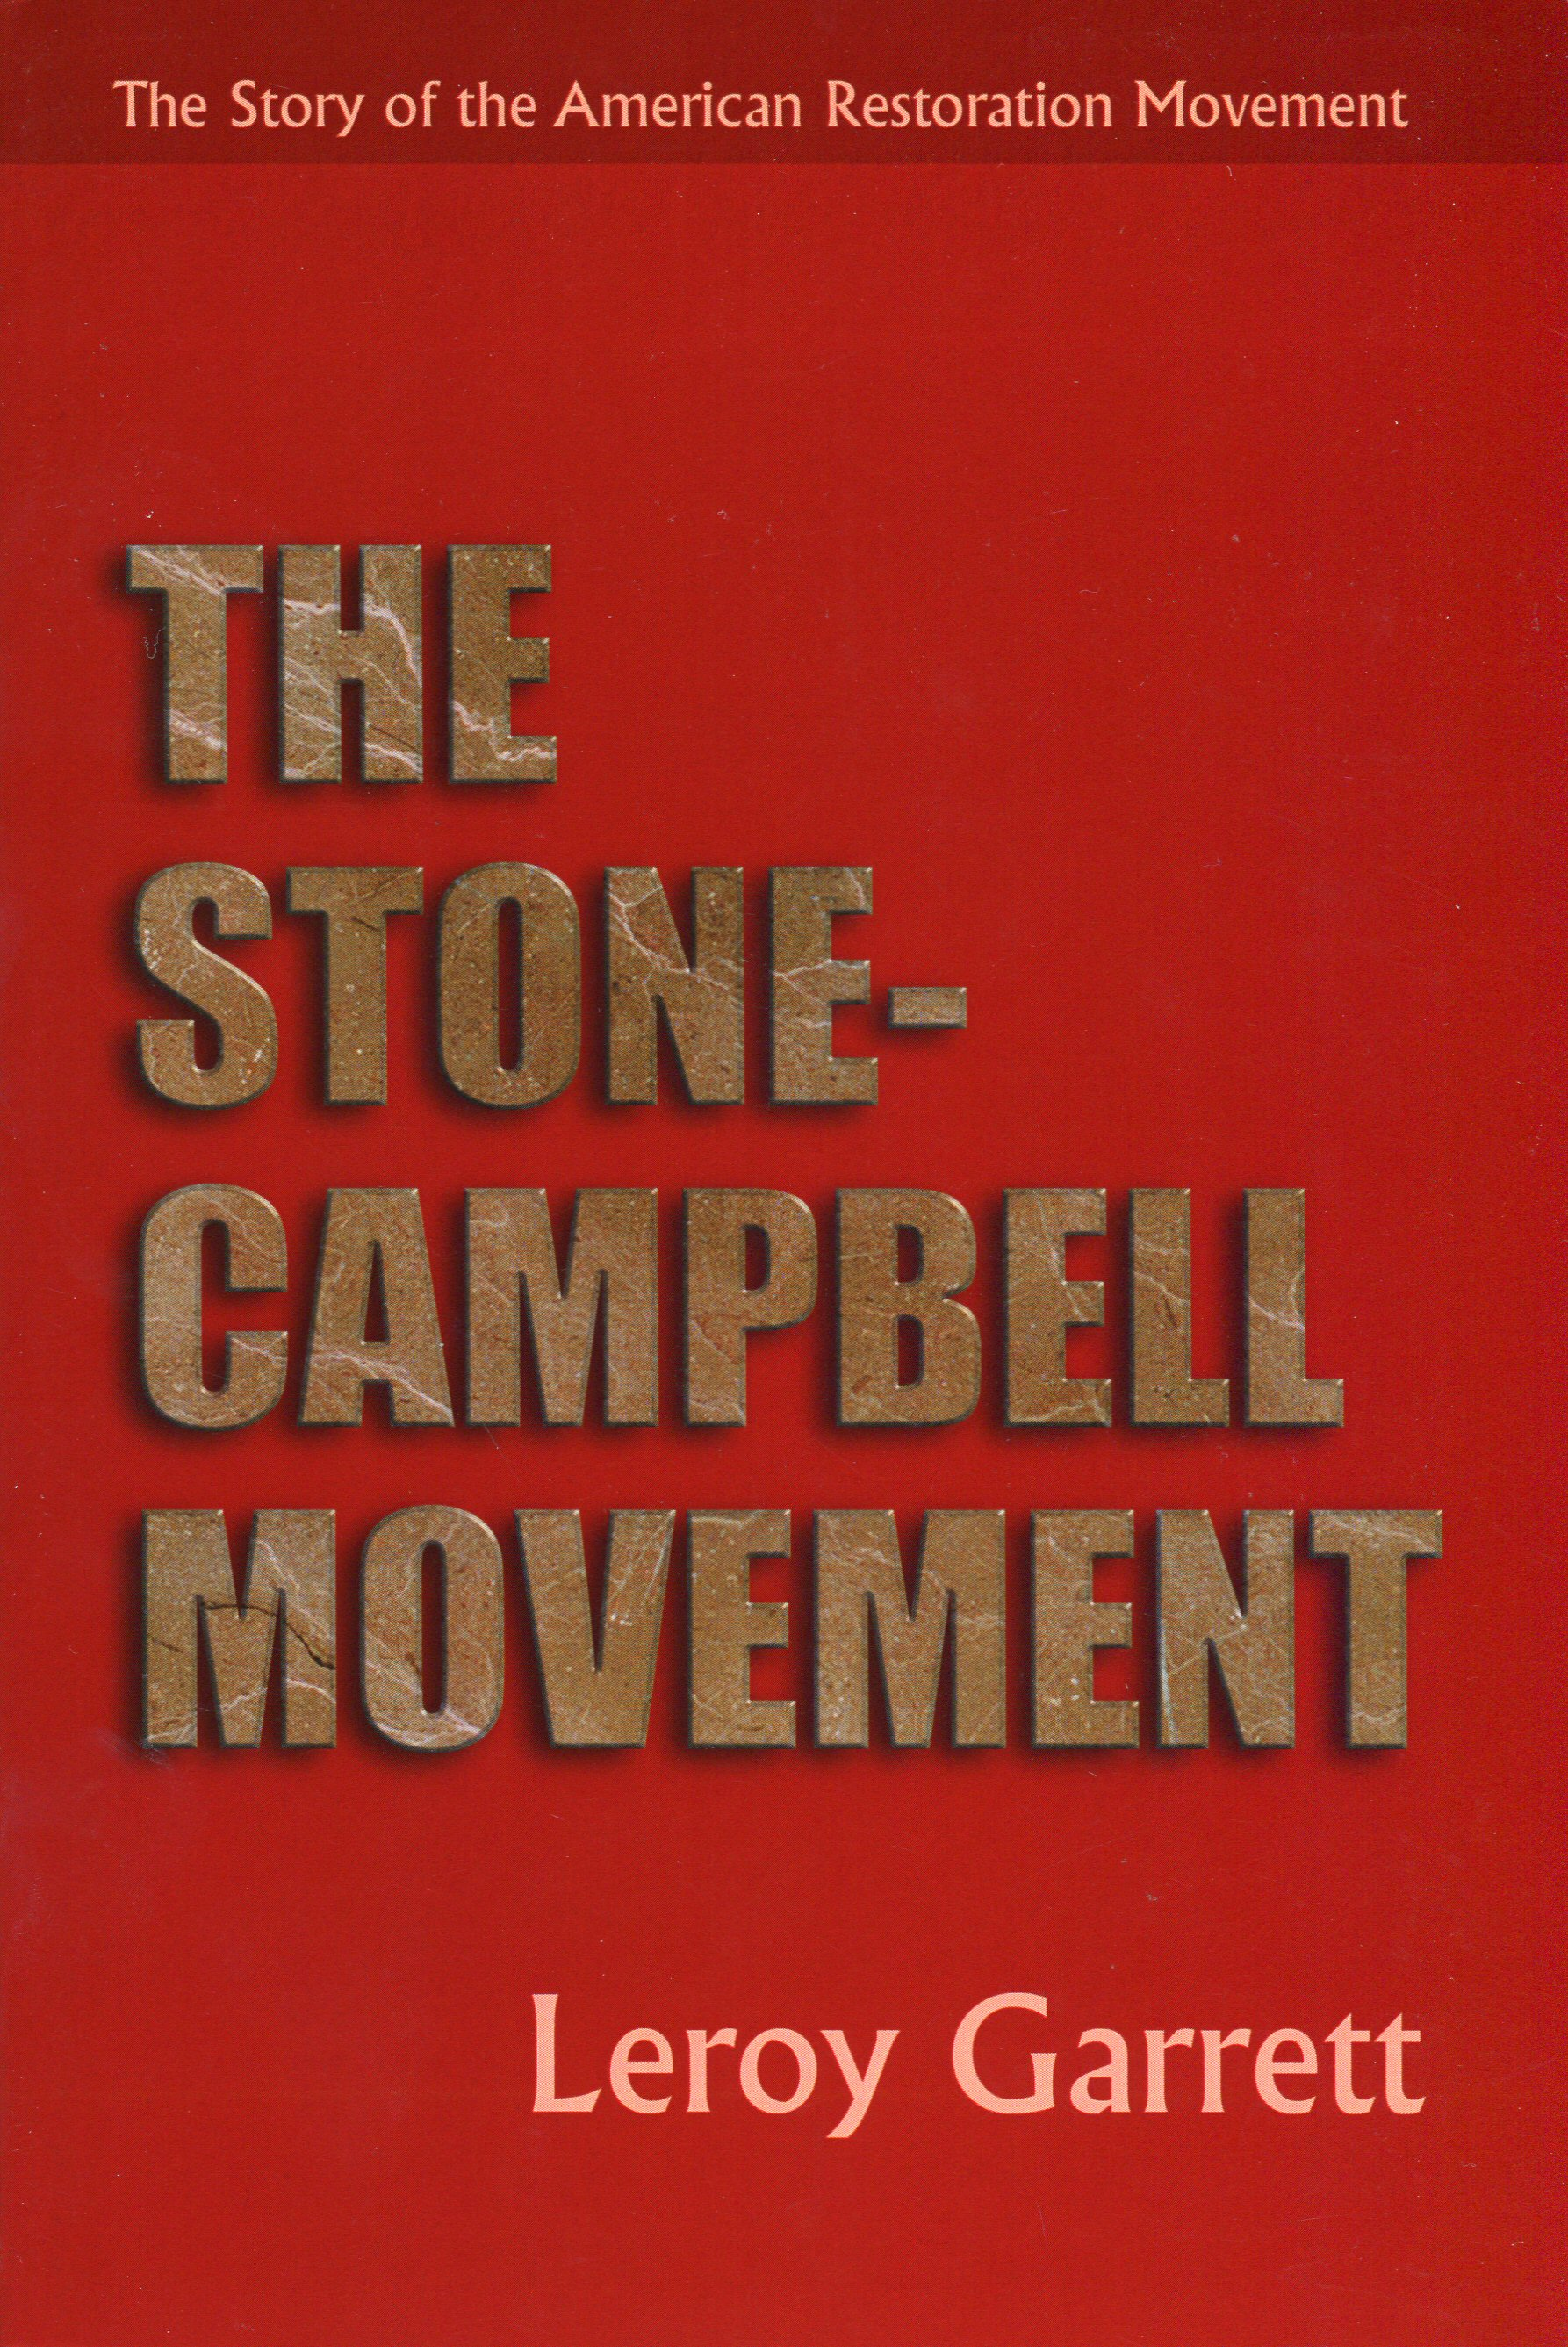 The Stone-Campbell Movement: The Story of the American Restoration Movement, rev. ed.